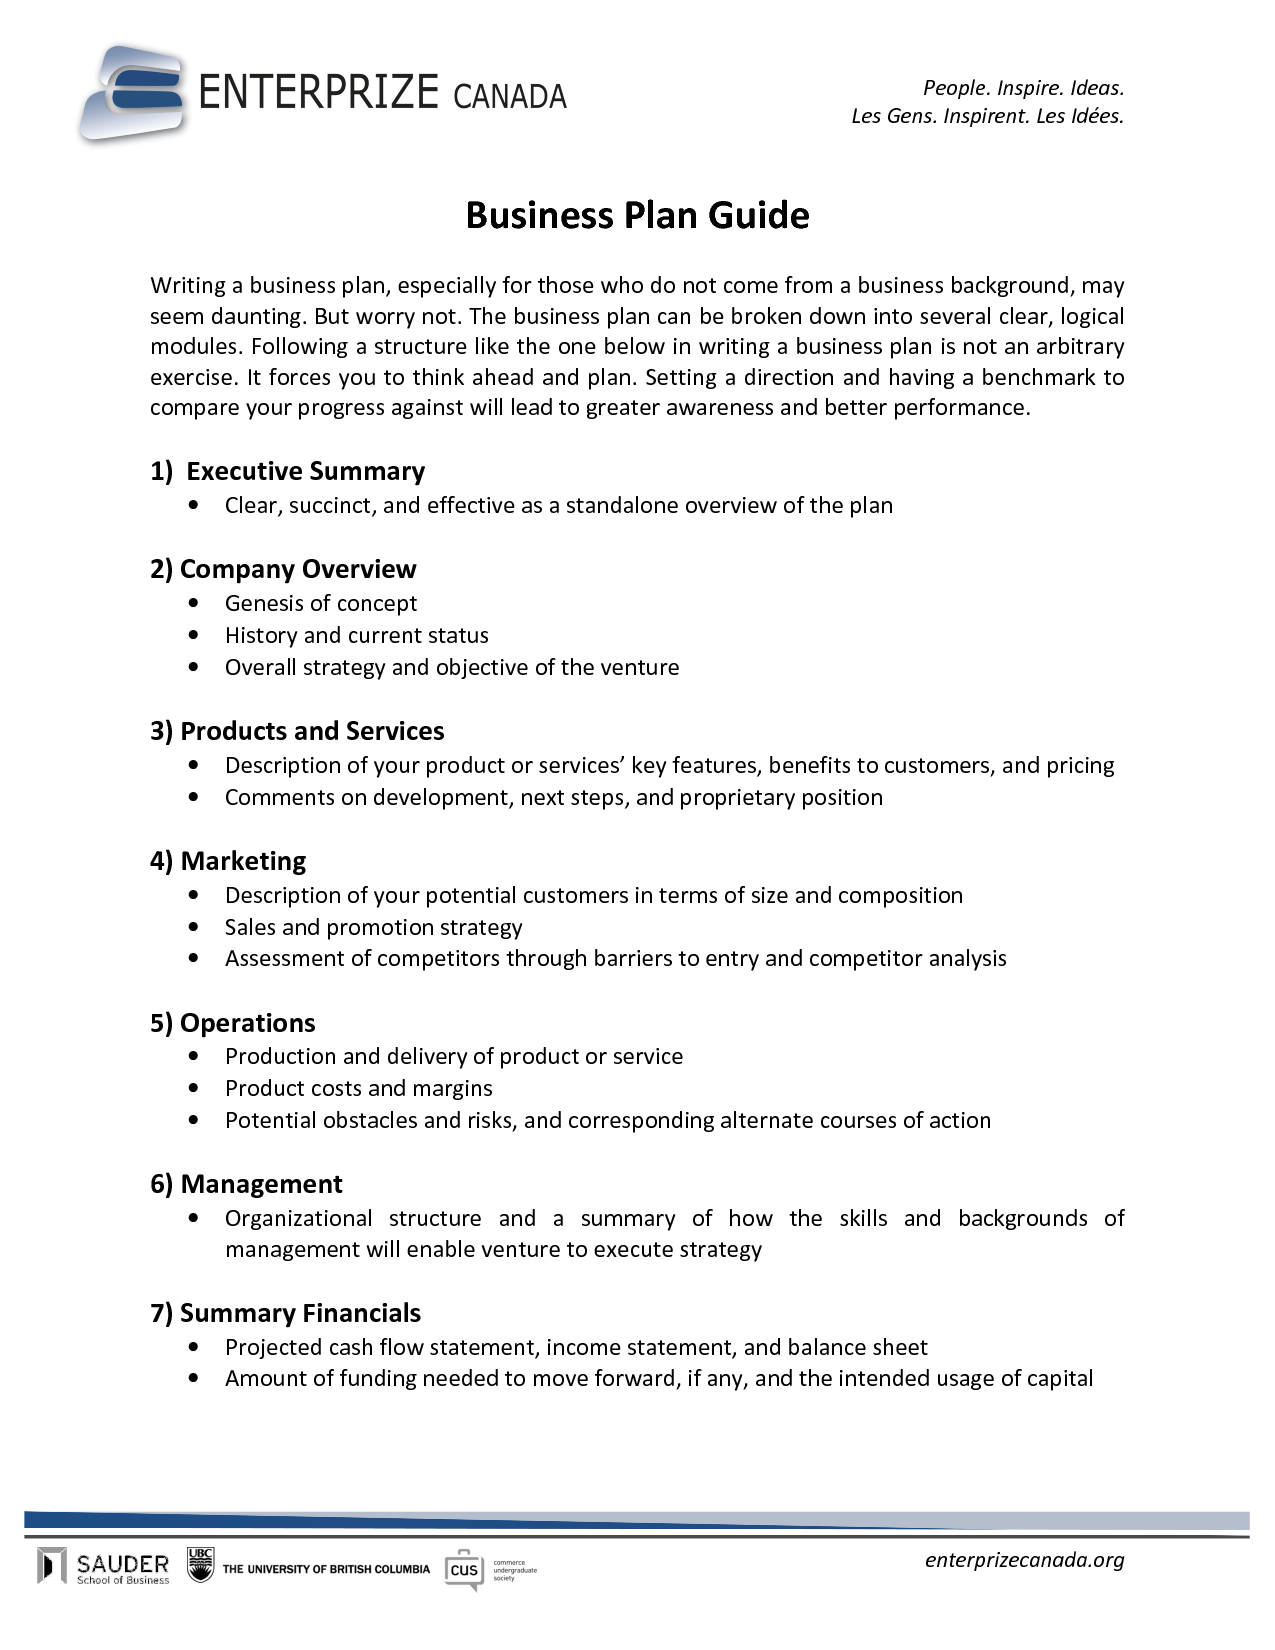 Free Small Business Guides, Free Business Books PDF